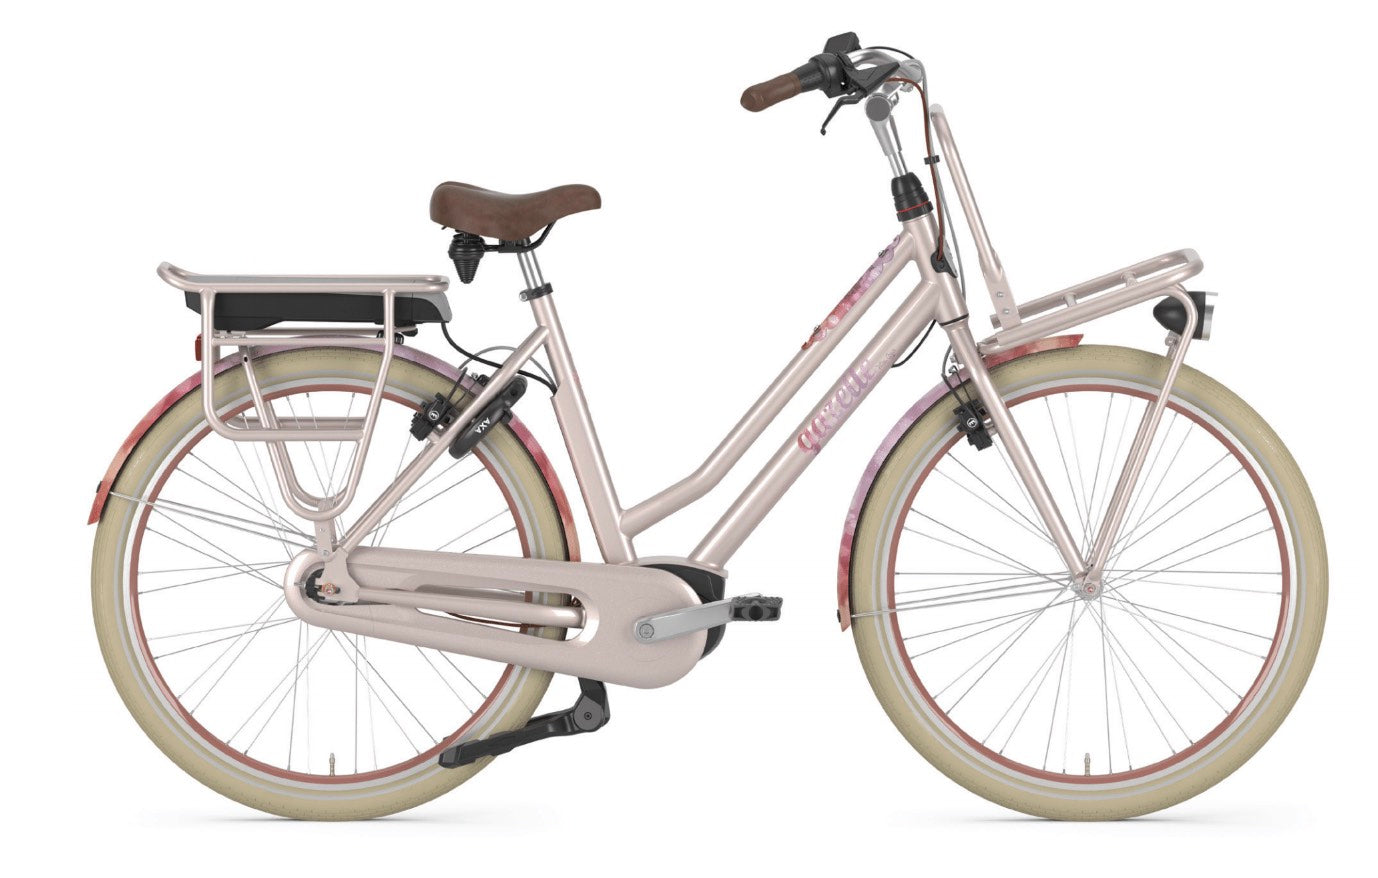 Verwonderend Gazelle Miss Grace C7 comfort electric bike - Electric Bikes Brisbane IT-12